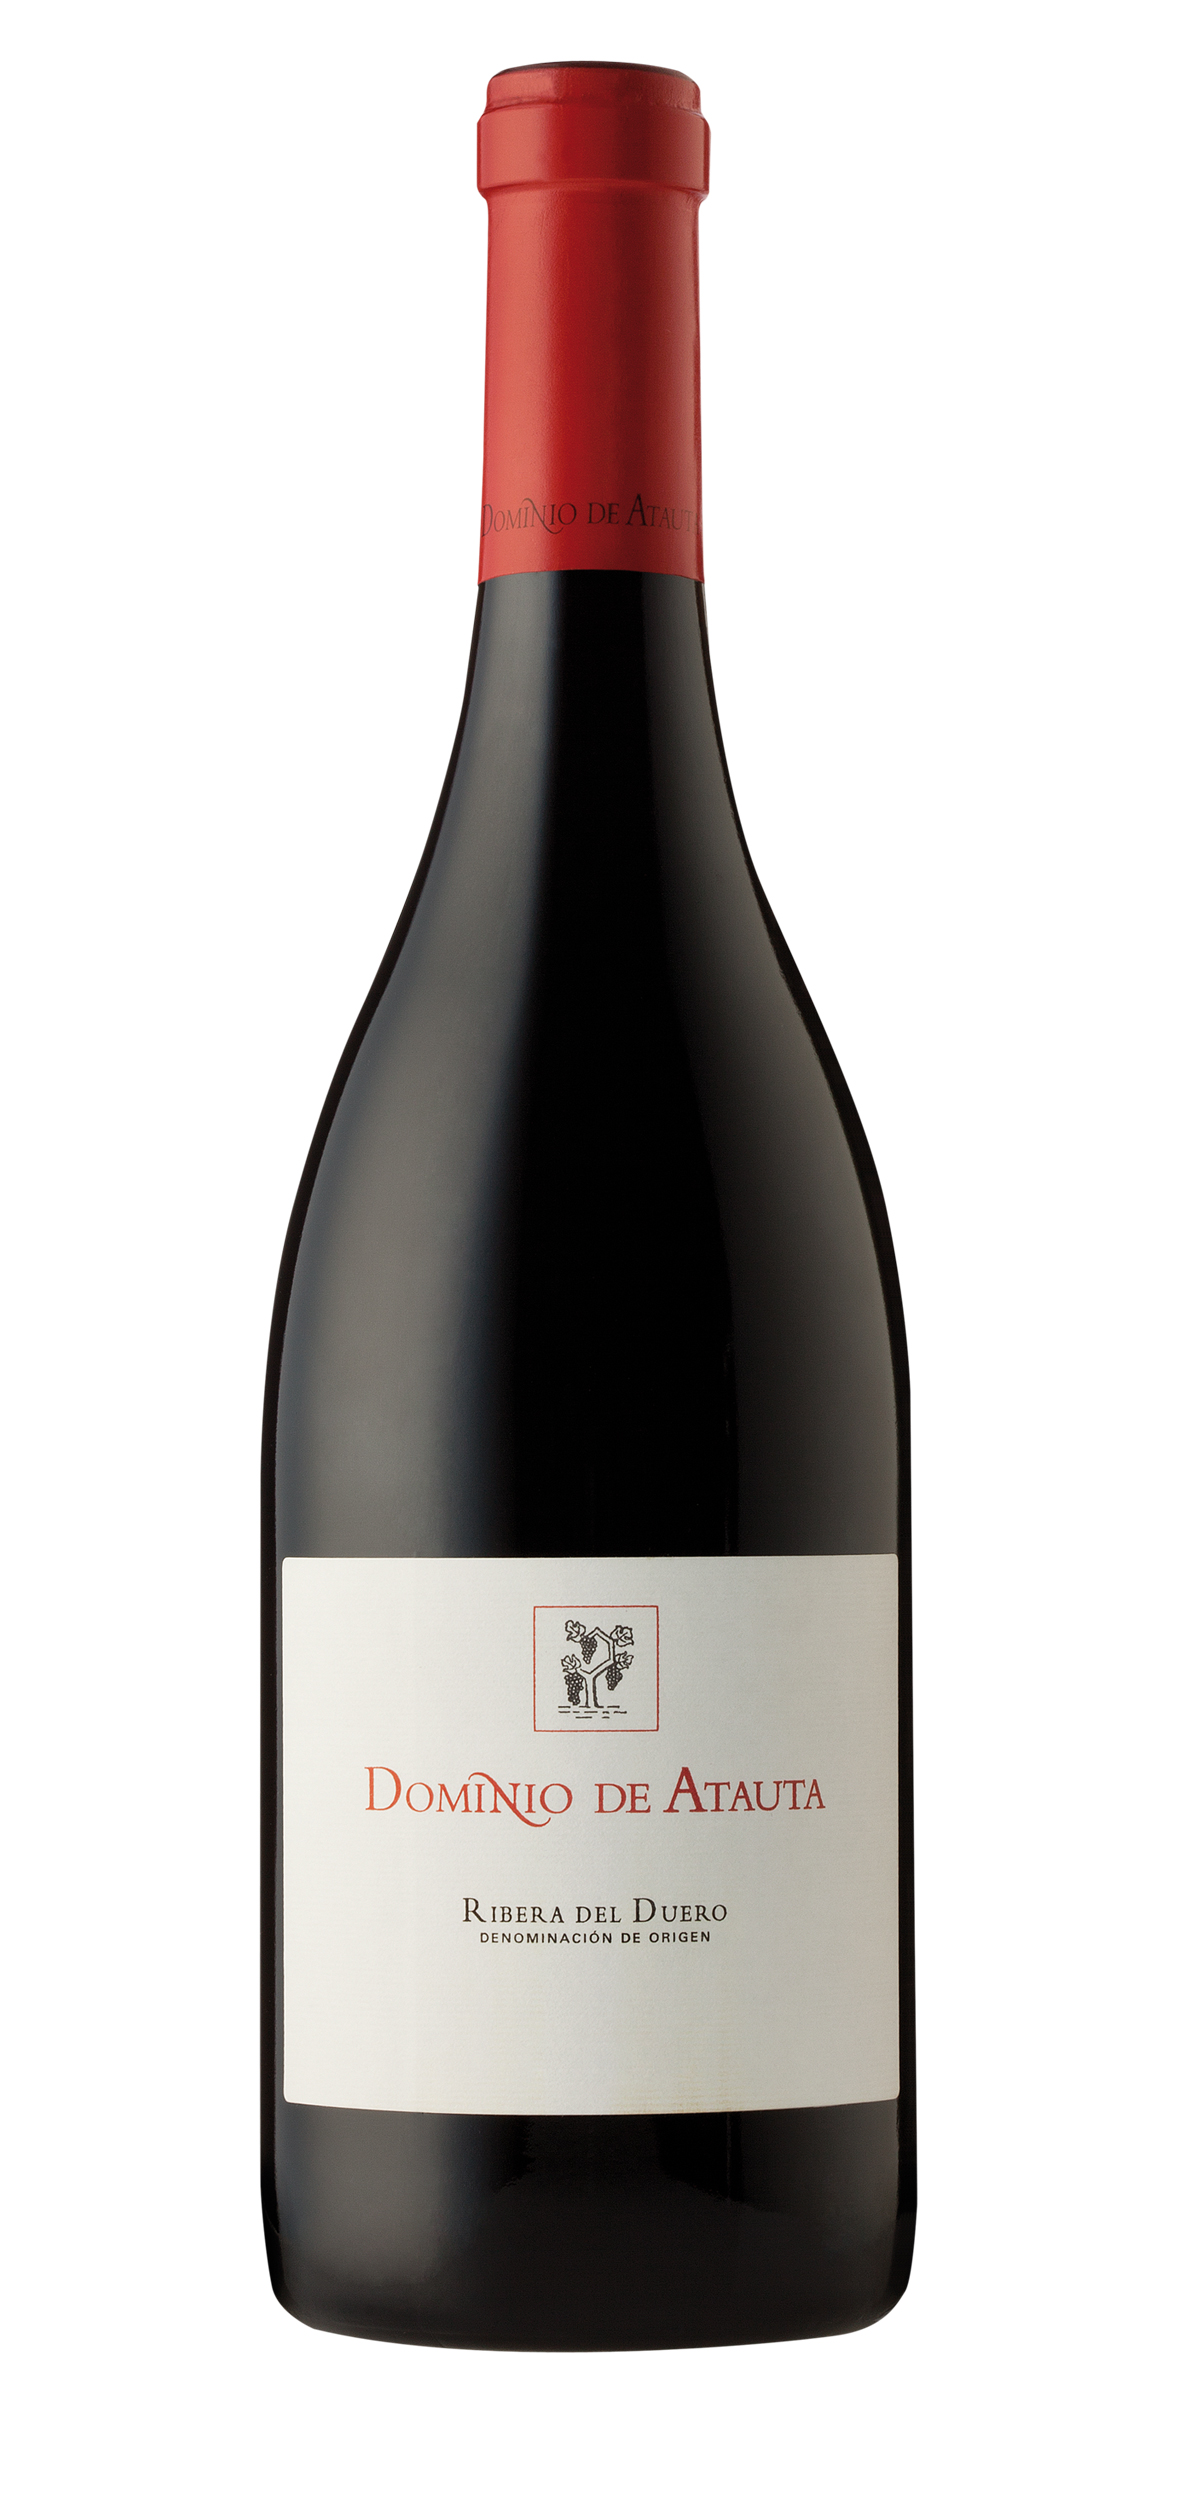 Dominio de Atauta wine bottle design